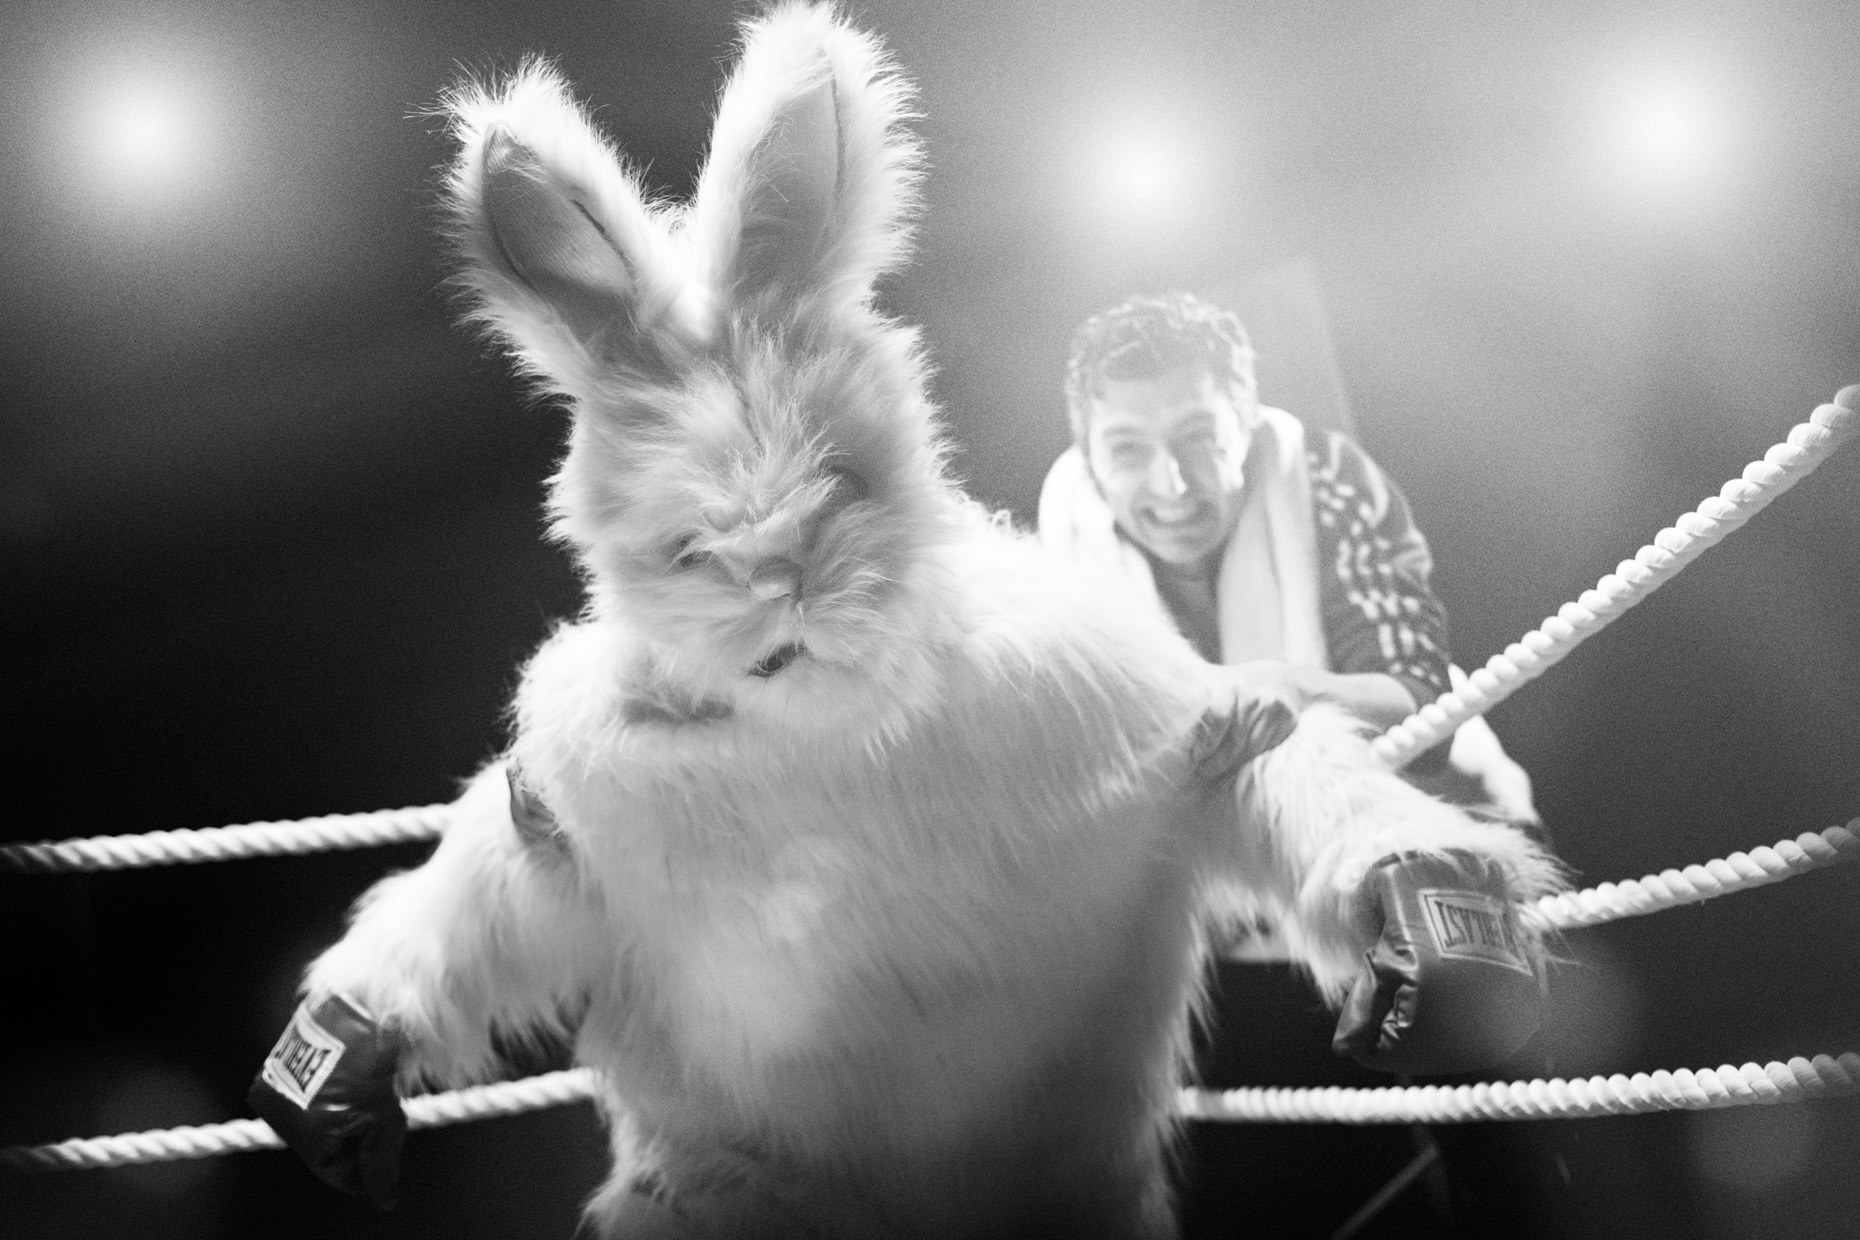 Raging Bunny in the boxing ring, starring Sean McGrath